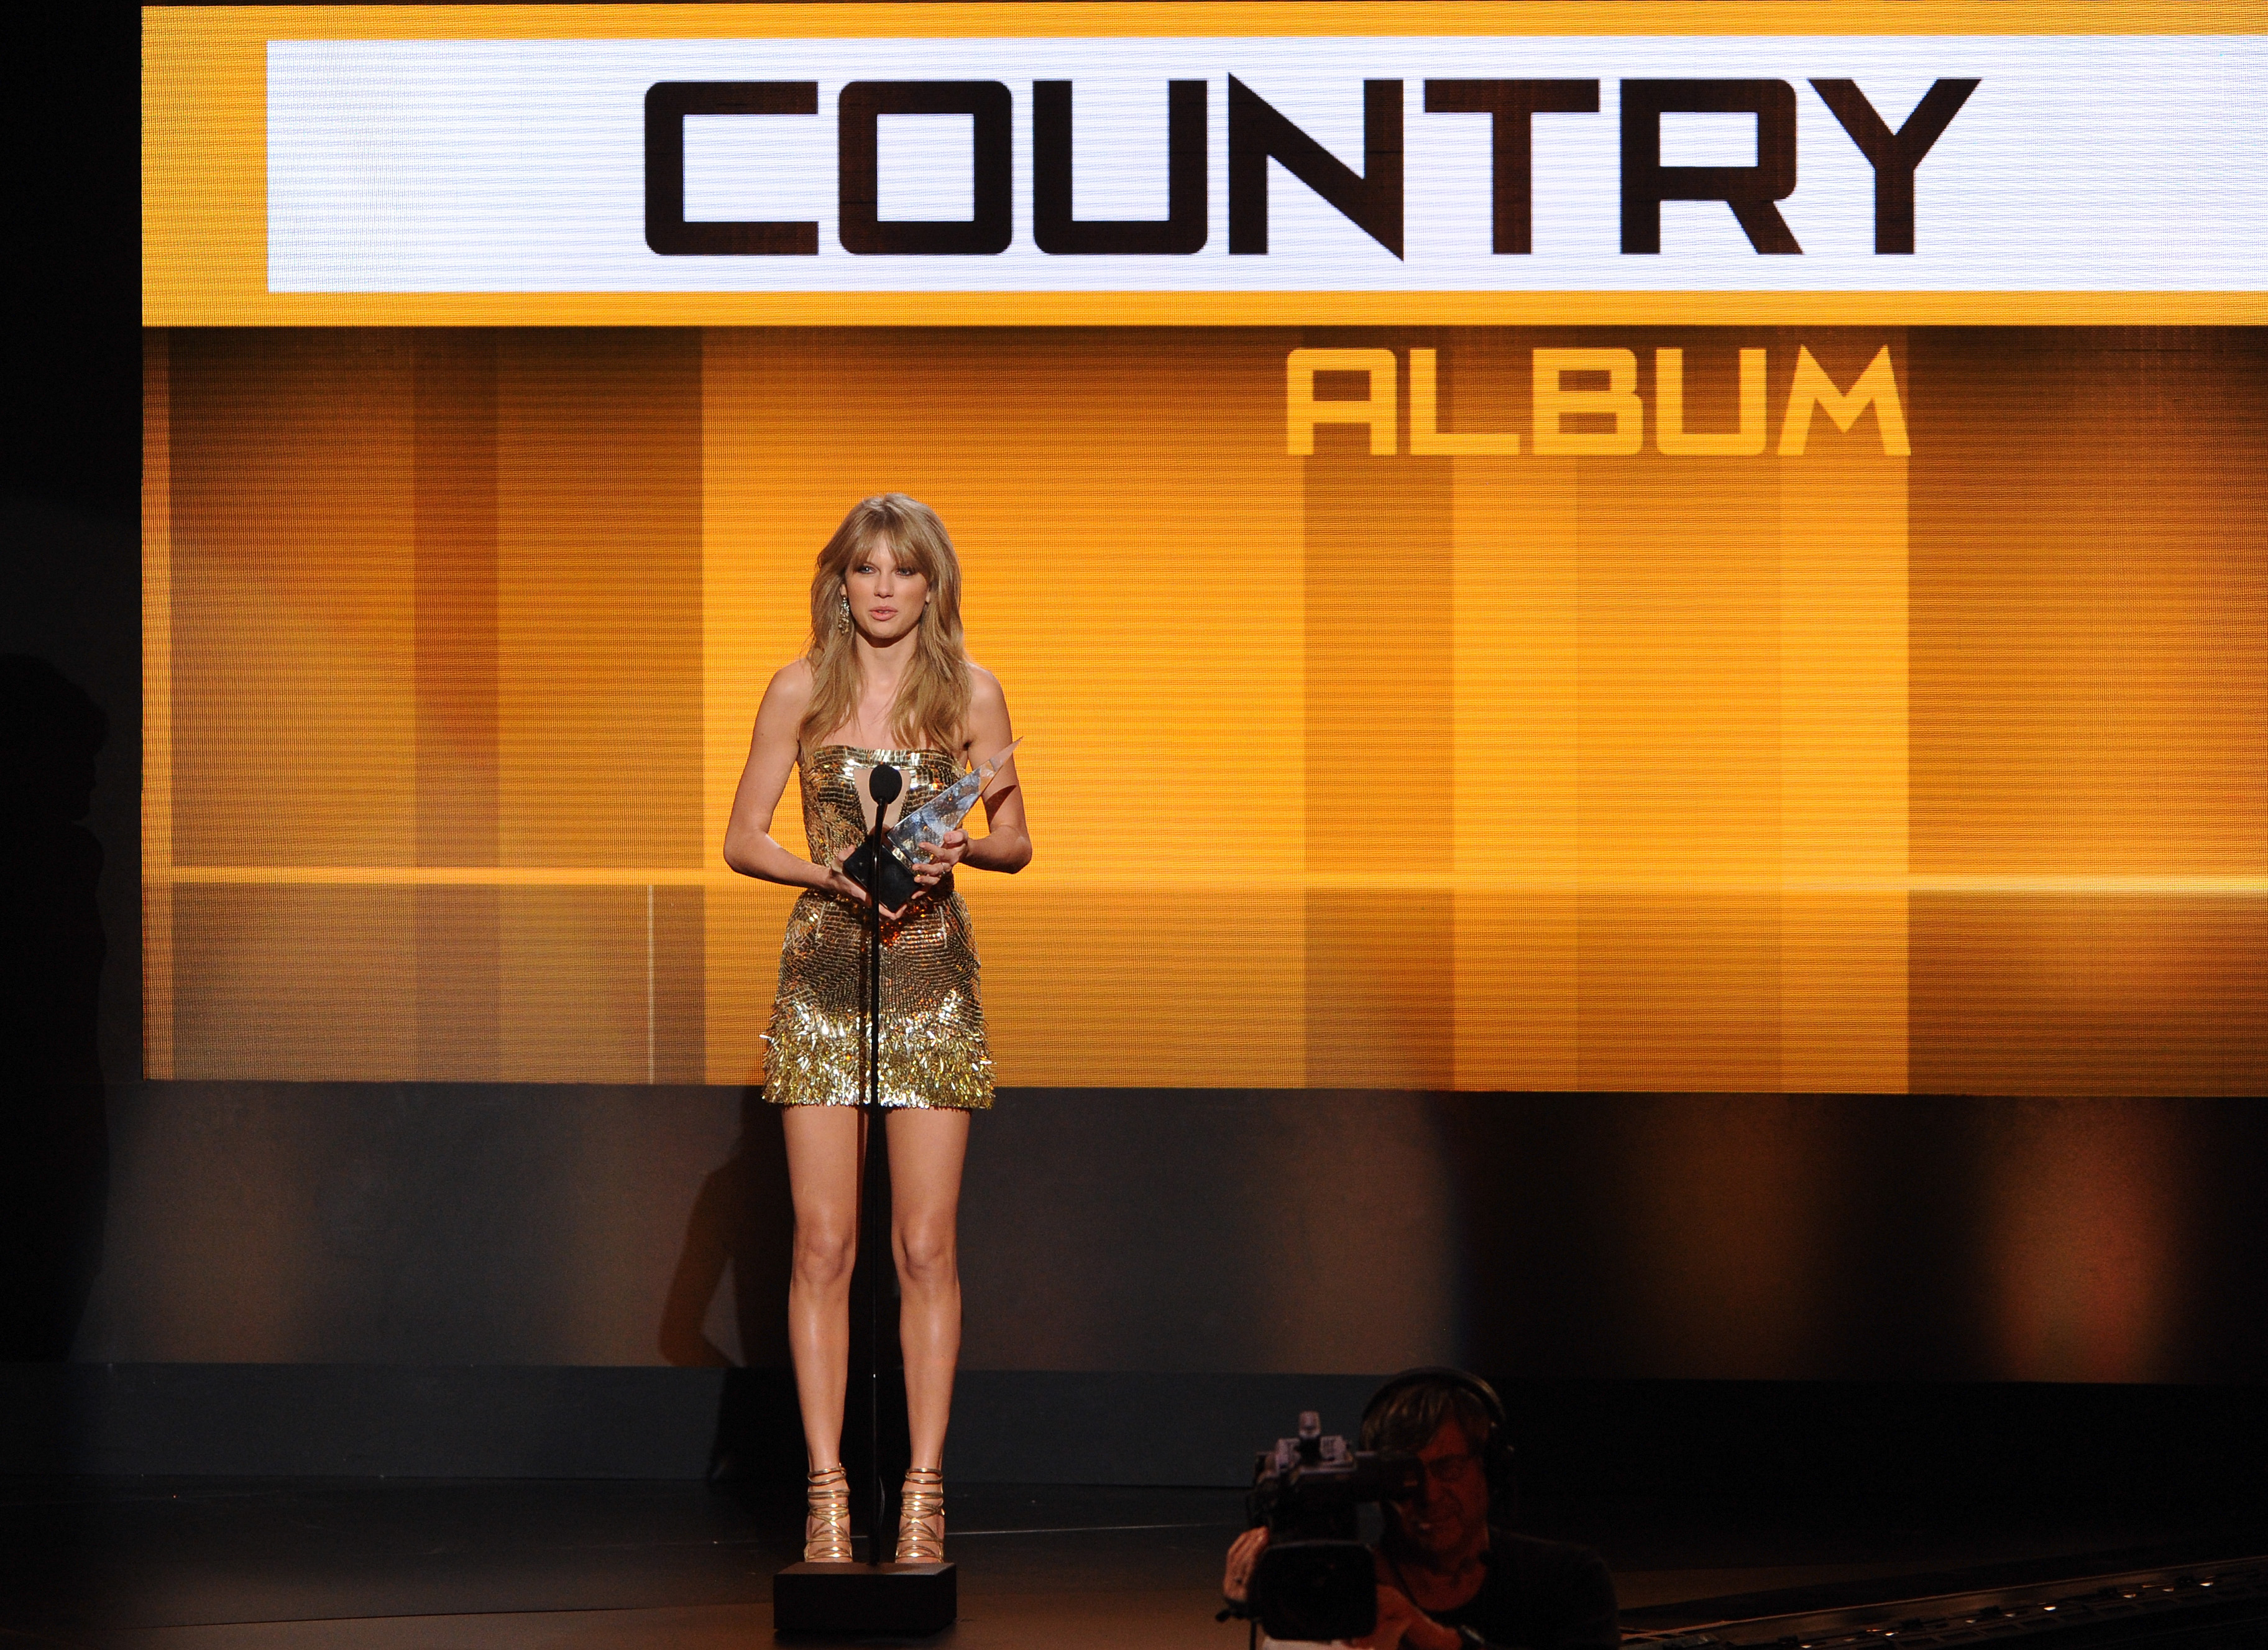 http://taylorpictures.net/albums/app/2013/americanmusicawards/036.jpg